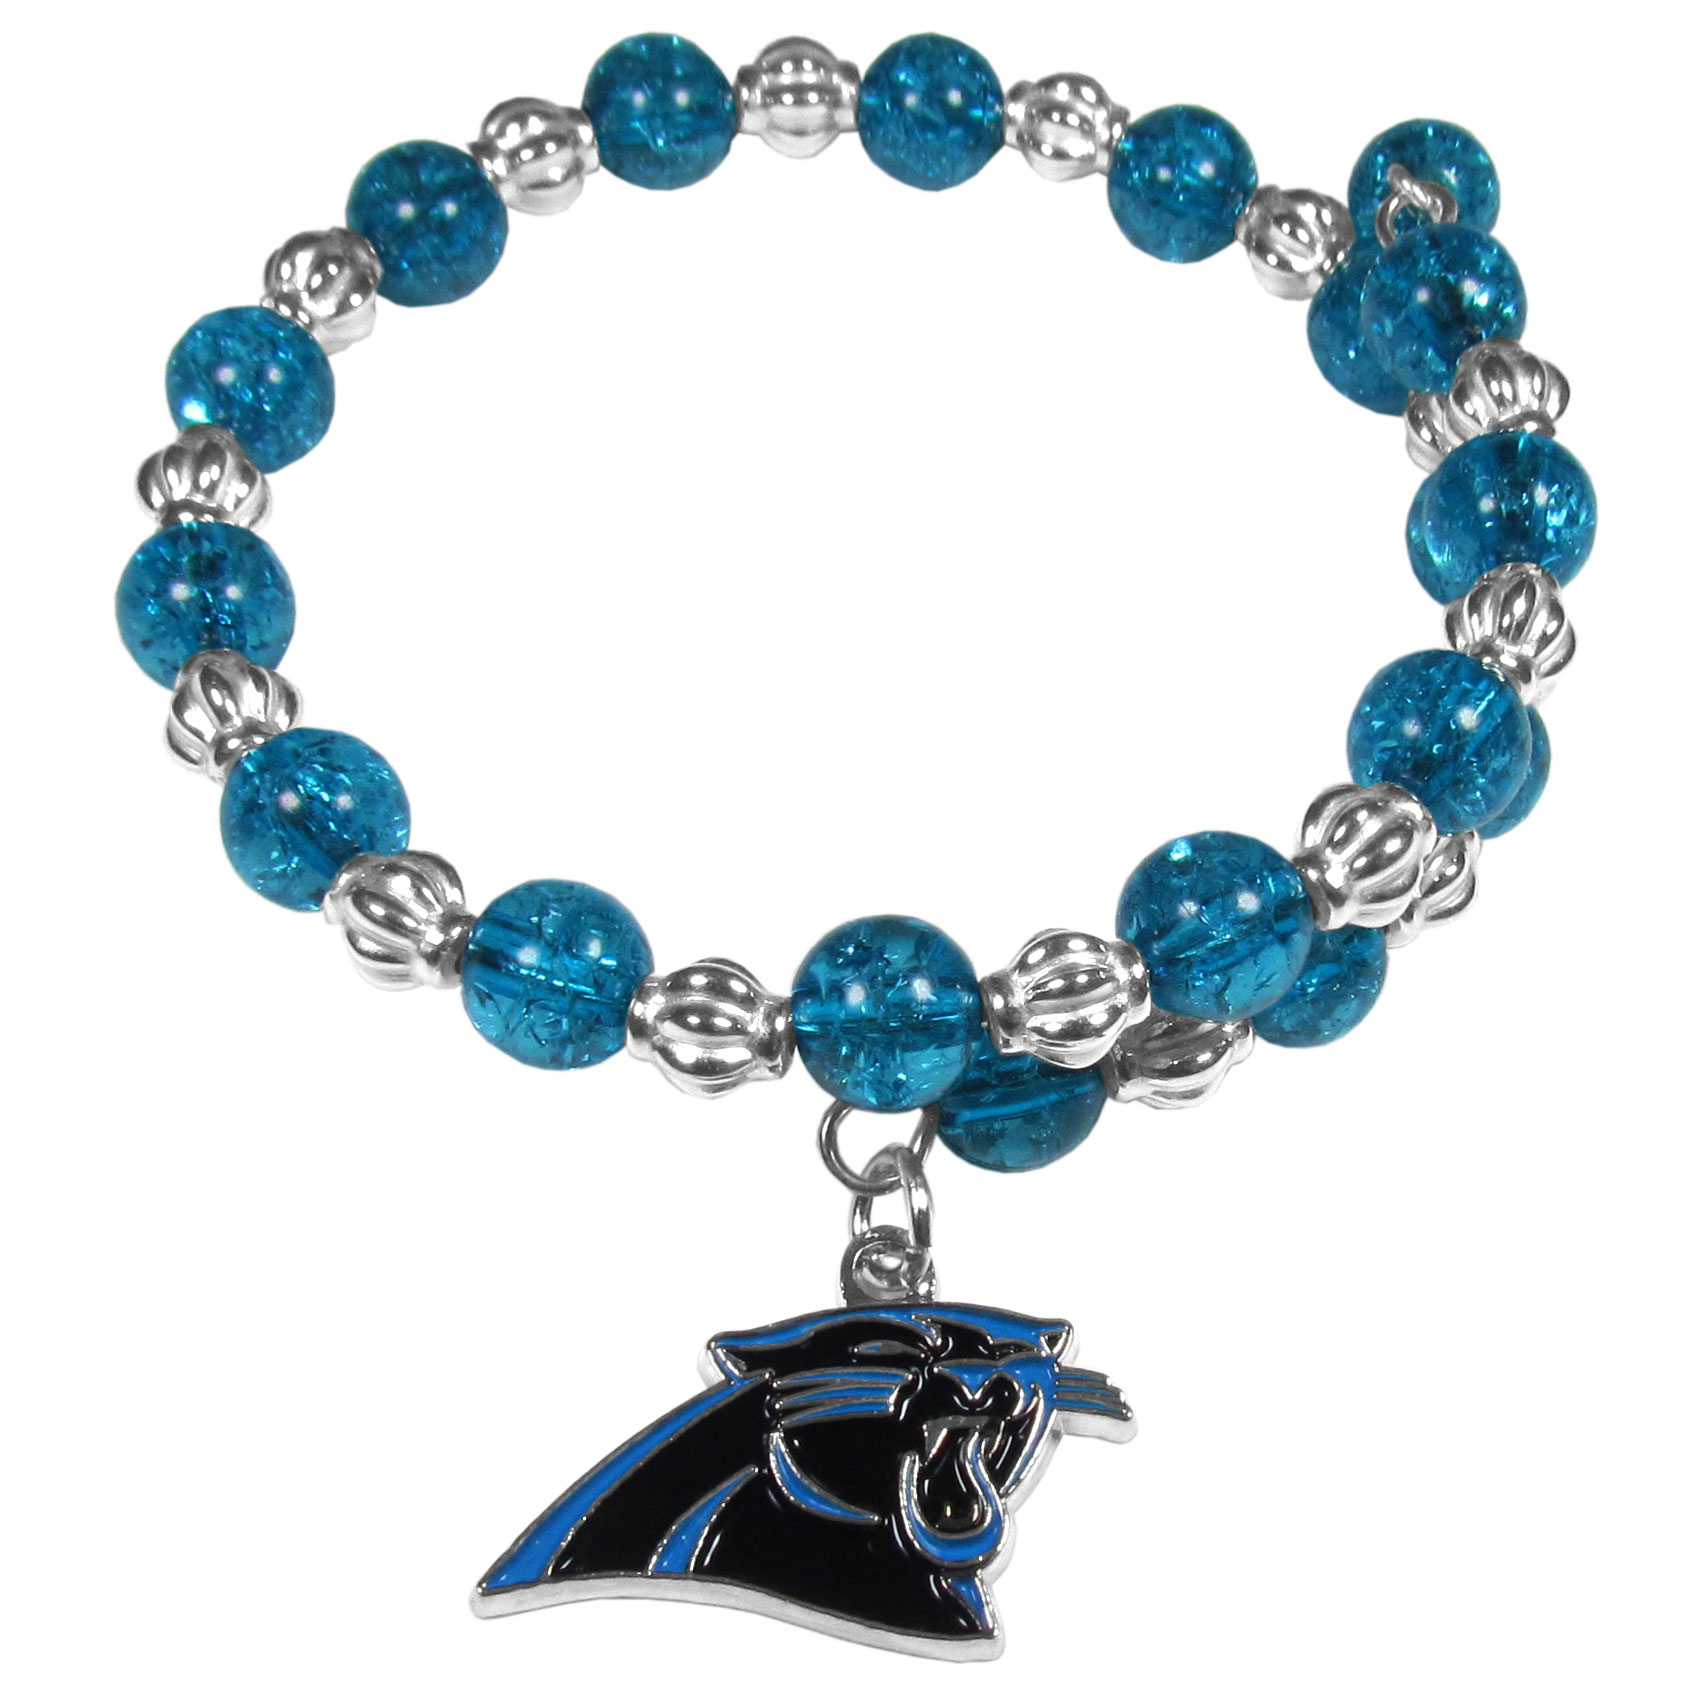 Carolina Panthers Bead Memory Wire Bracelet - Our Carolina Panthers memory wire bead bracelet is trendy way to show off your love of the game. The double wrap bracelet is completely covered in 7.5 mm crystals that are broken up with silvertoned beads creating a designer look with a sporty twist. The bracelet features a fully cast, metal team charm that has expertly enameled team colors. This fashion jewelry piece is a must-have for the die-hard fan that chic look that can dress up any outfit.